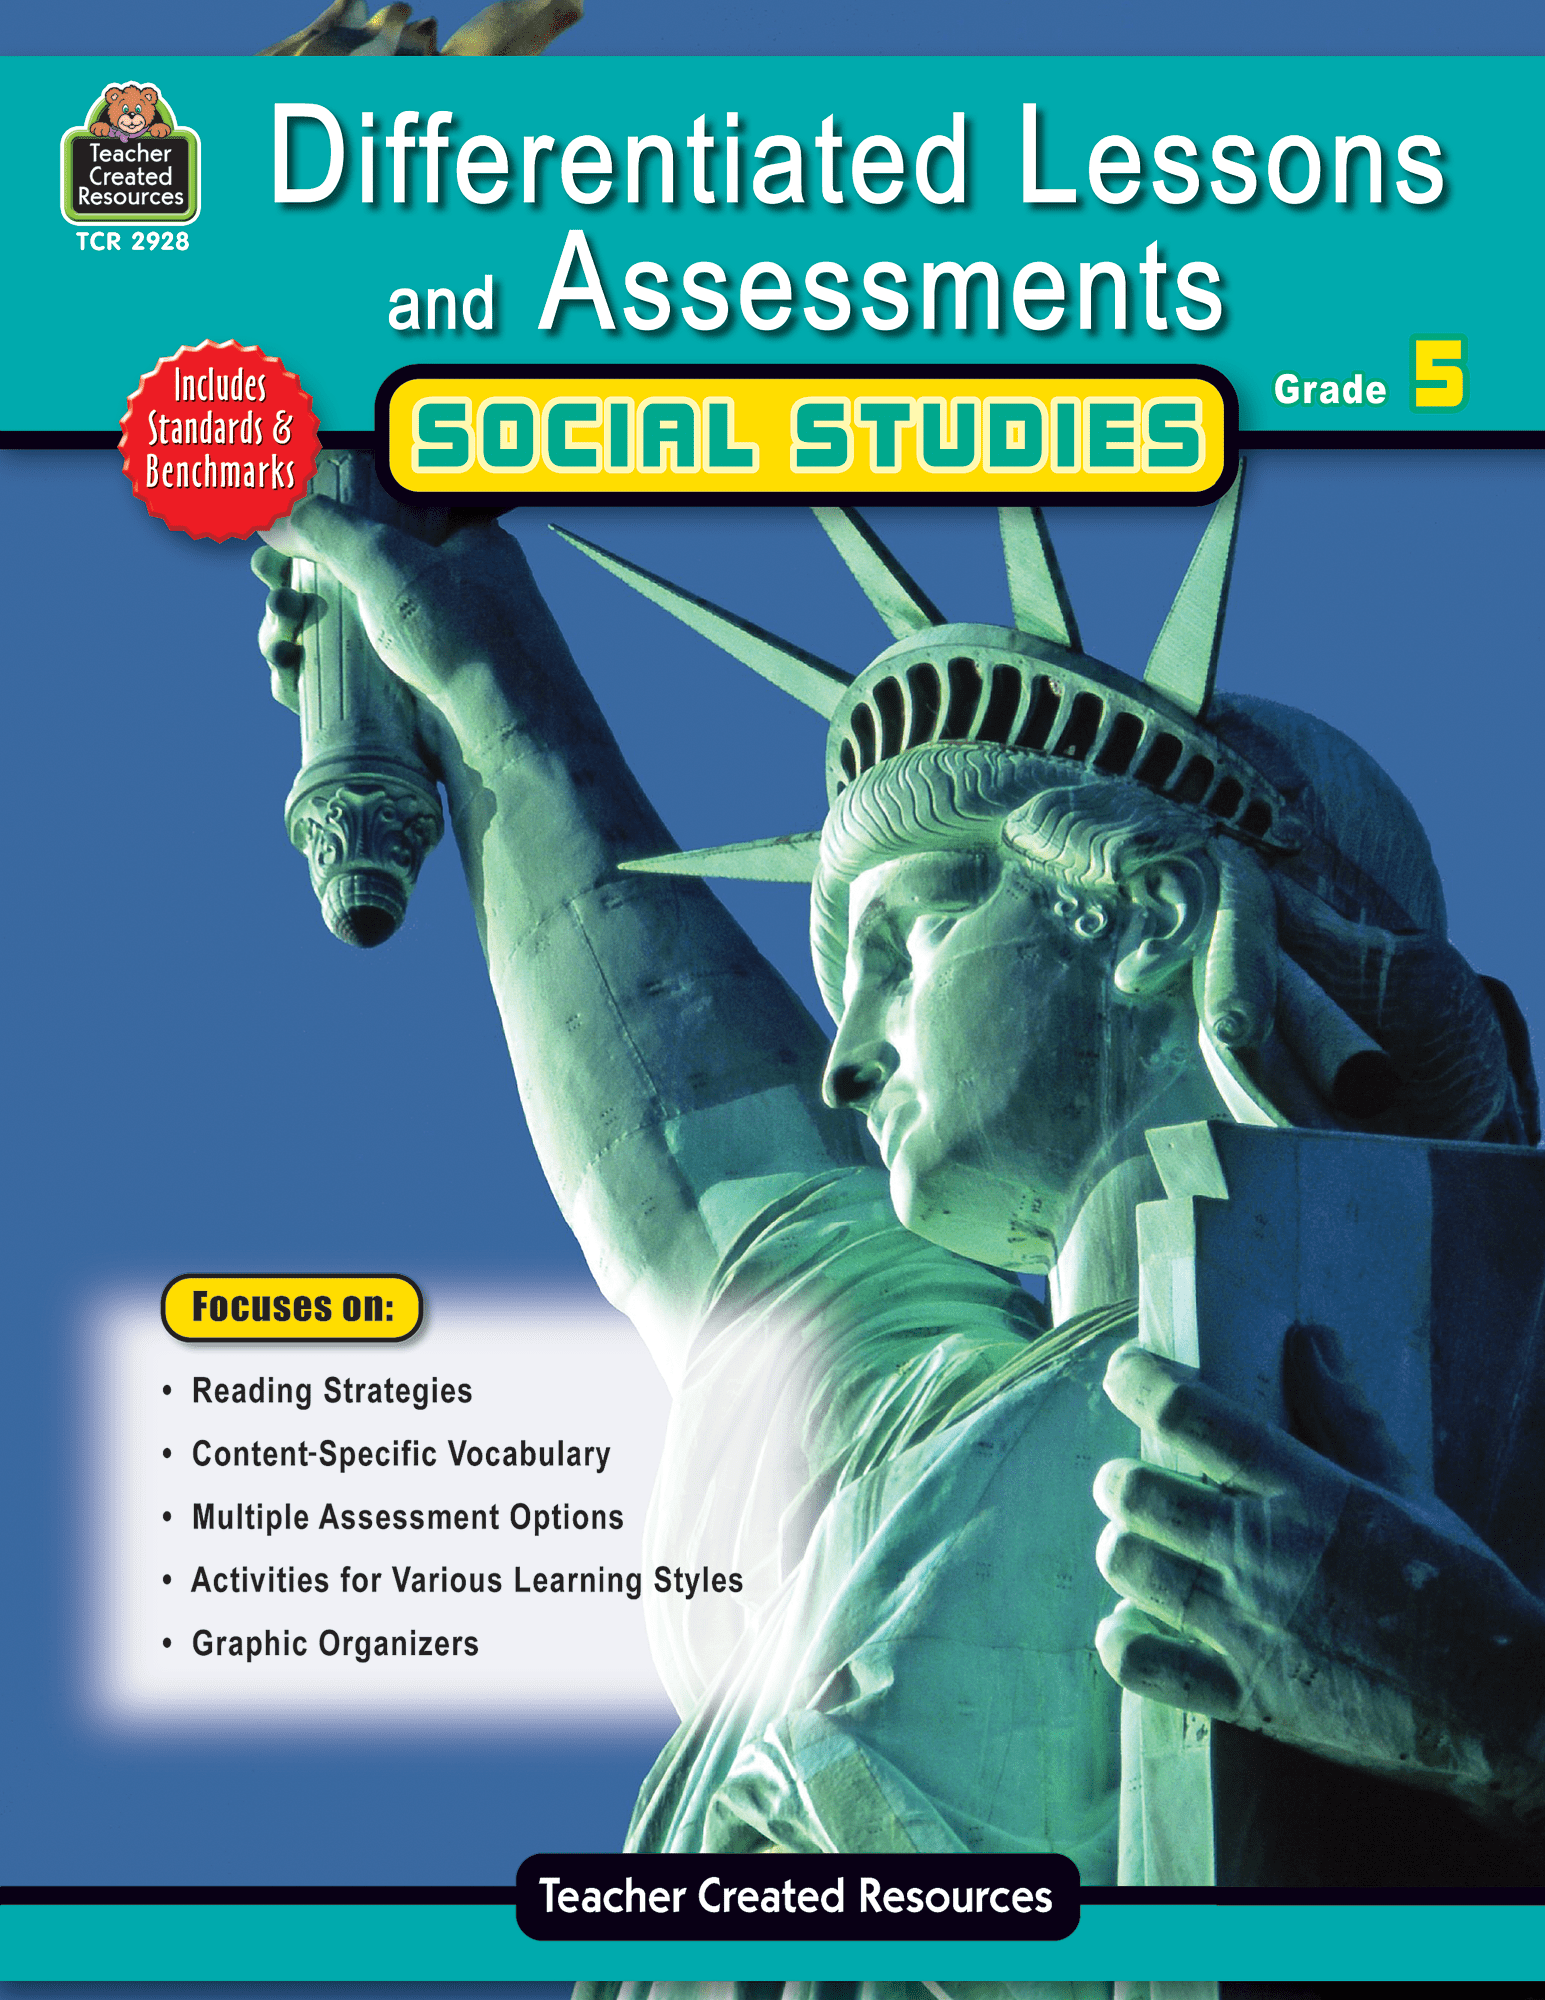 hight resolution of Differentiated Lessons \u0026 Assessments: Social Studies Grade 5 - TCR2928    Teacher Created Resources